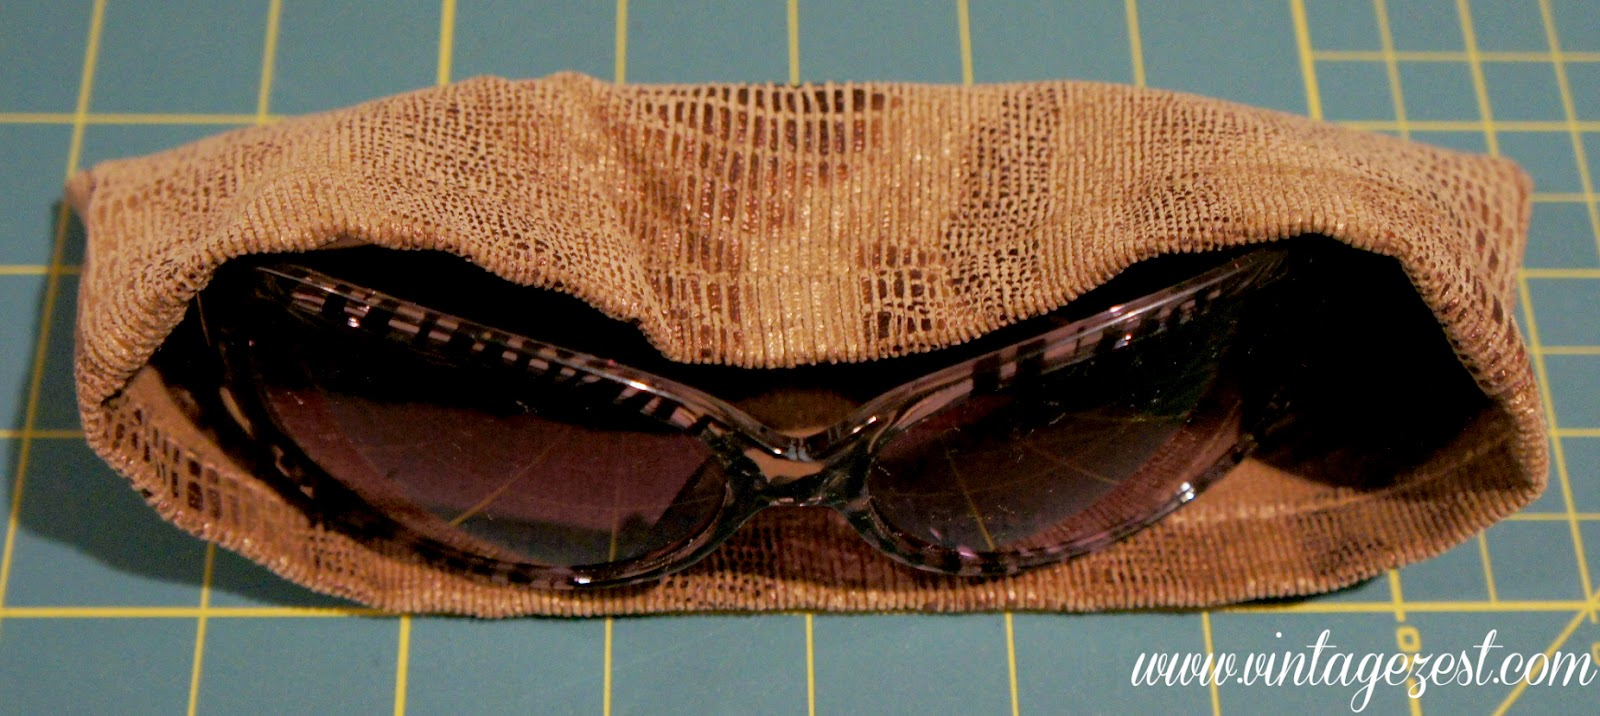 Upcycled Pant Hems into Sunglasses Sleeve